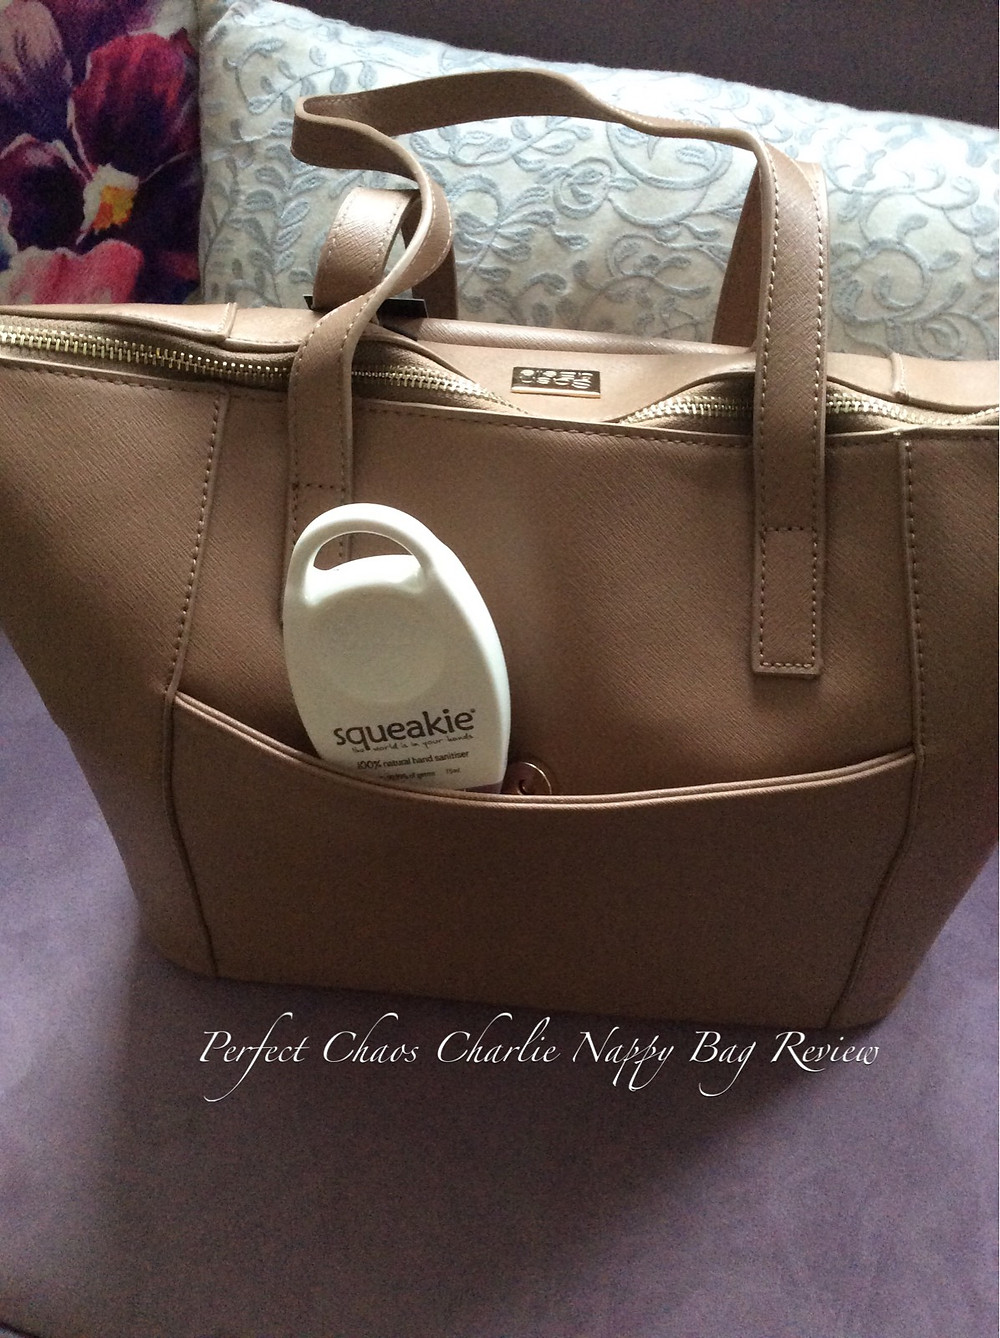 Rear view of the Sash & Belle Charlie Nappy Bag in Taupe with Squeakie 100% Natural Hand Sanitiser shown in rear pocket.